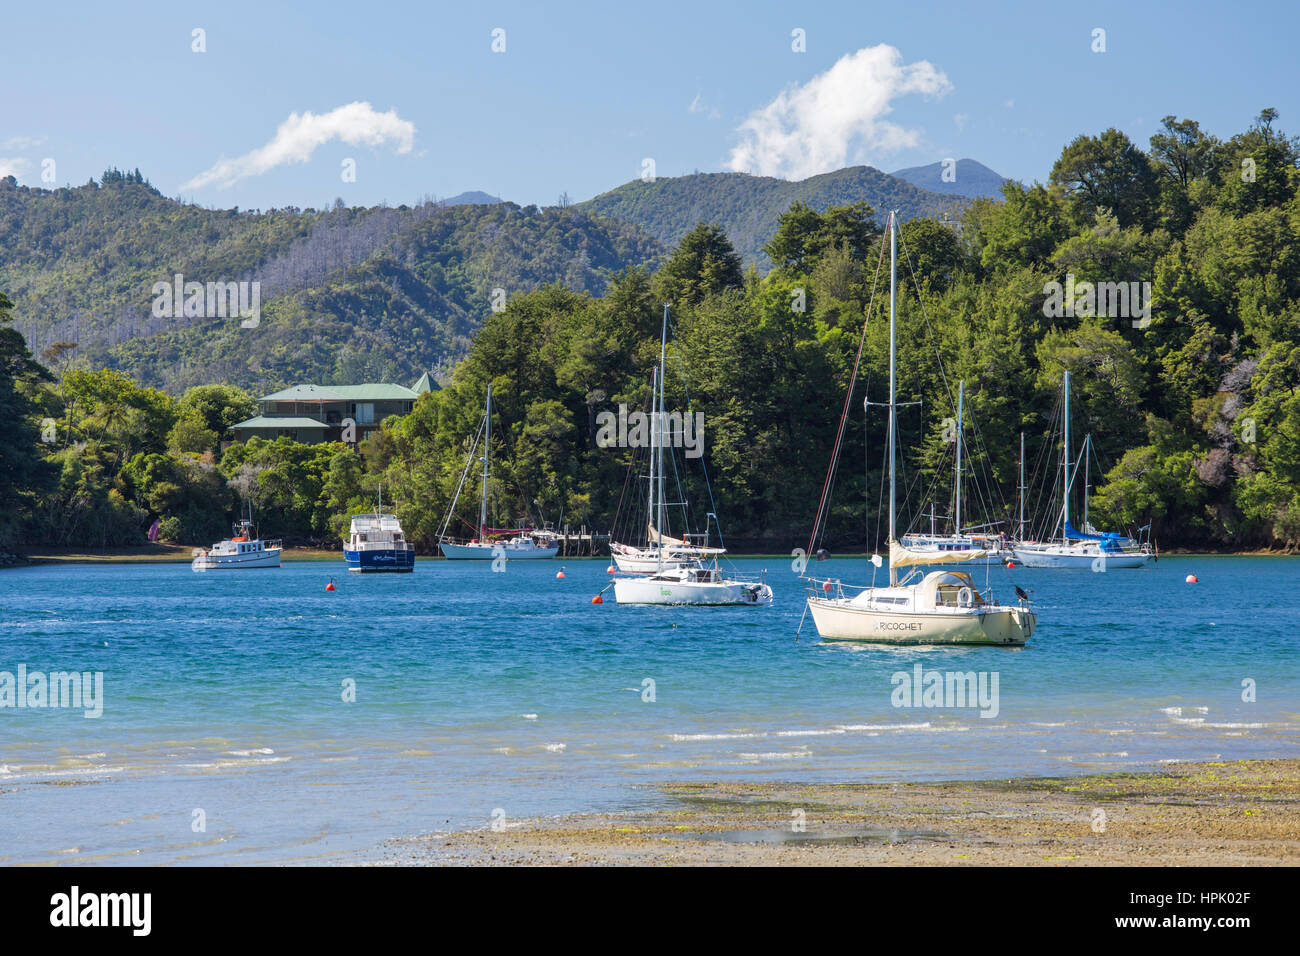 Picton, Marlborough, New Zealand. Yachts anchored in the sheltered harbour at Ngakuta Bay. - Stock Image